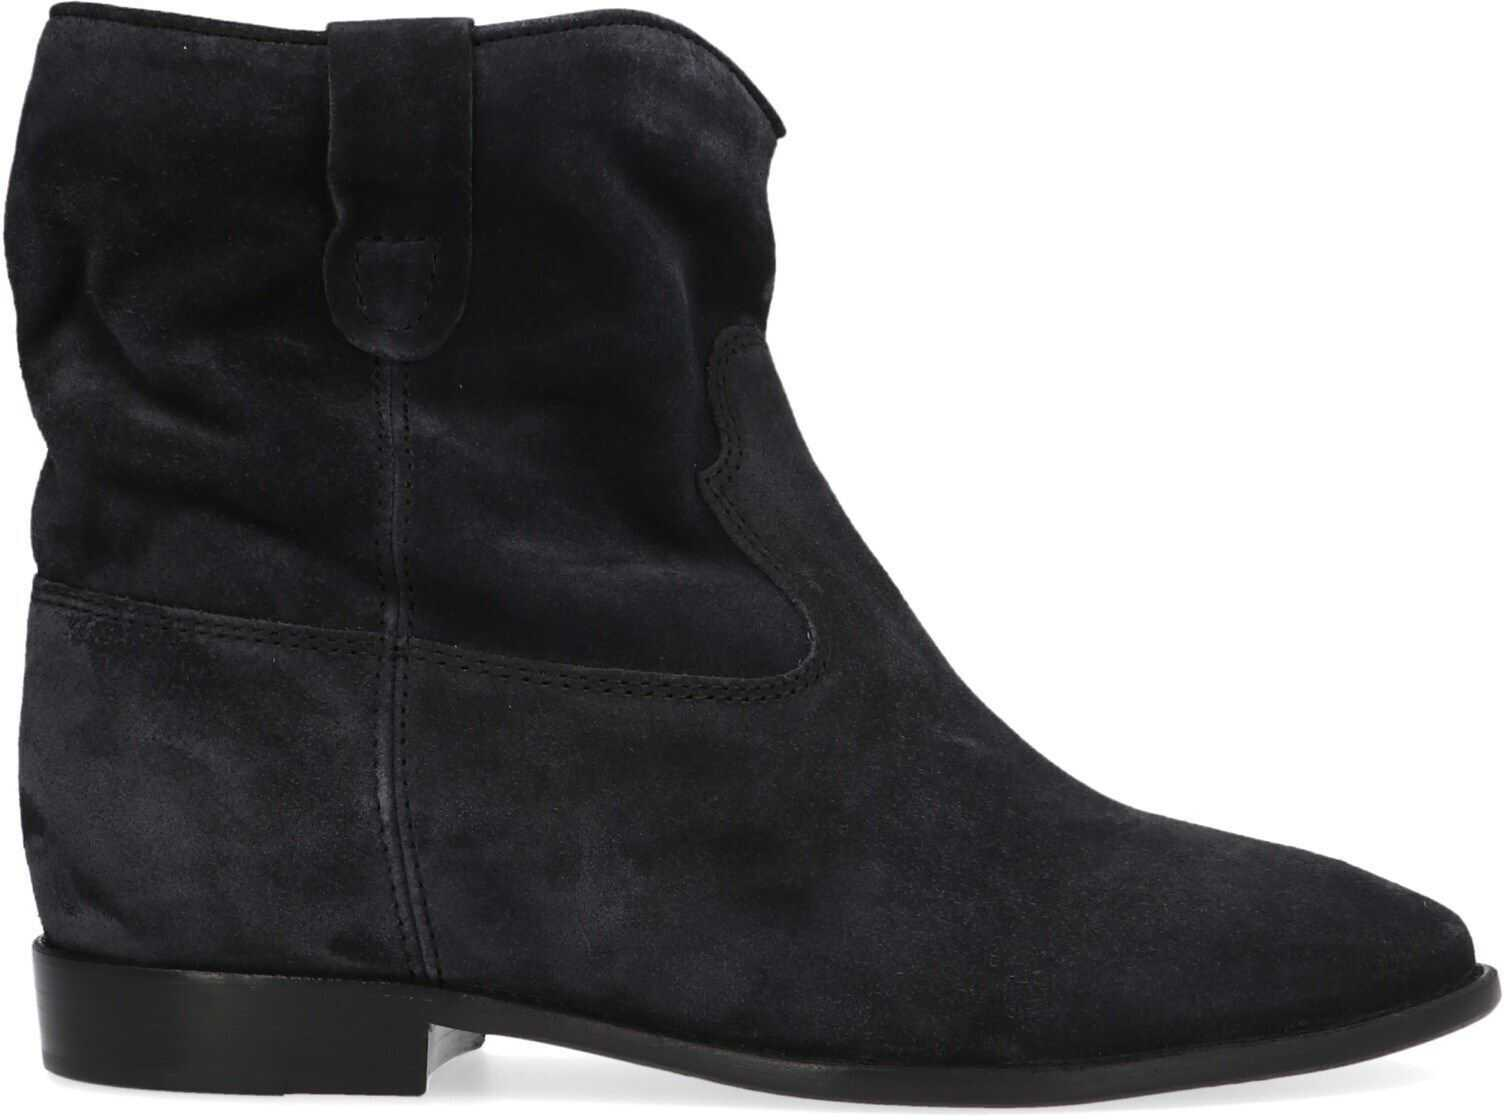 Isabel Marant Suede Ankle Boots GREY